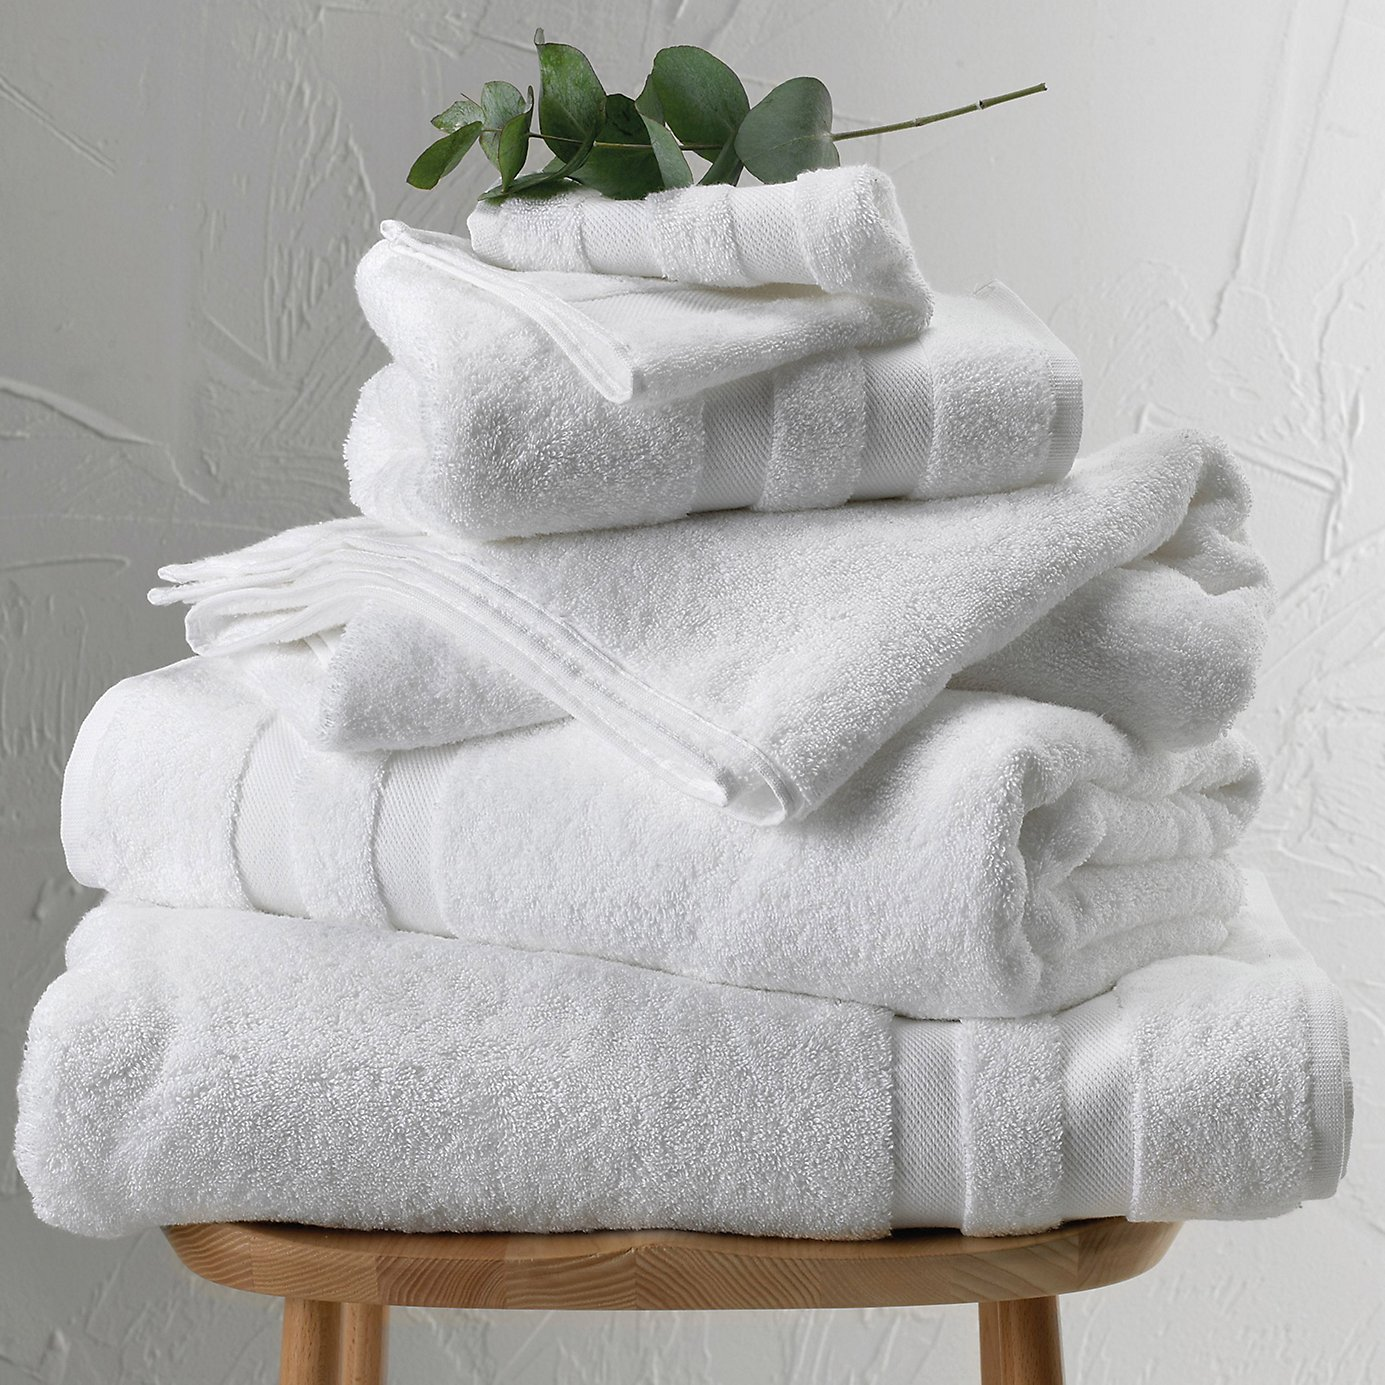 Image result for fluffy white towels